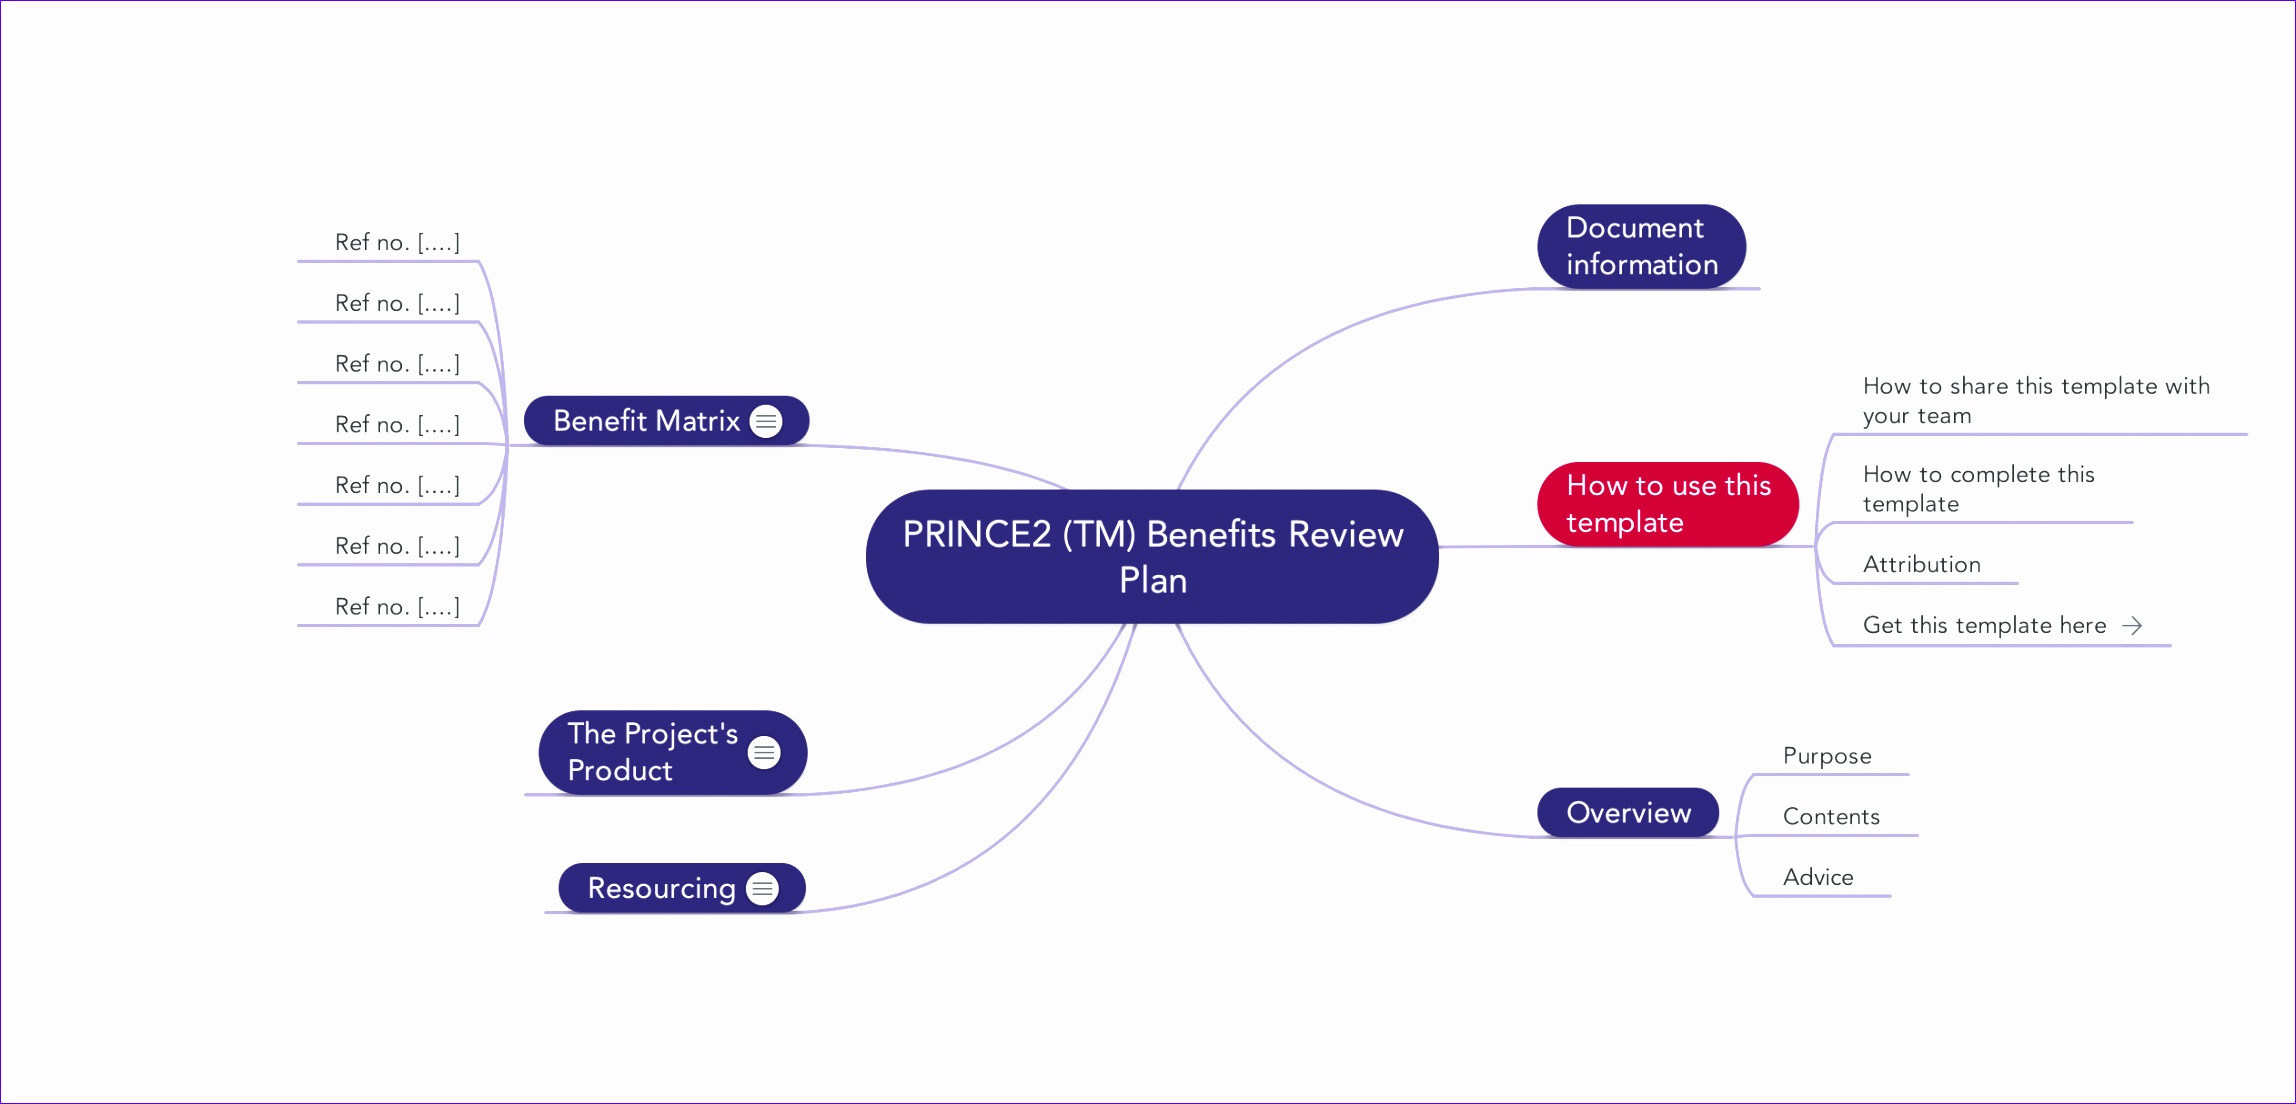 PRINCE2 TM Benefits Review Plan